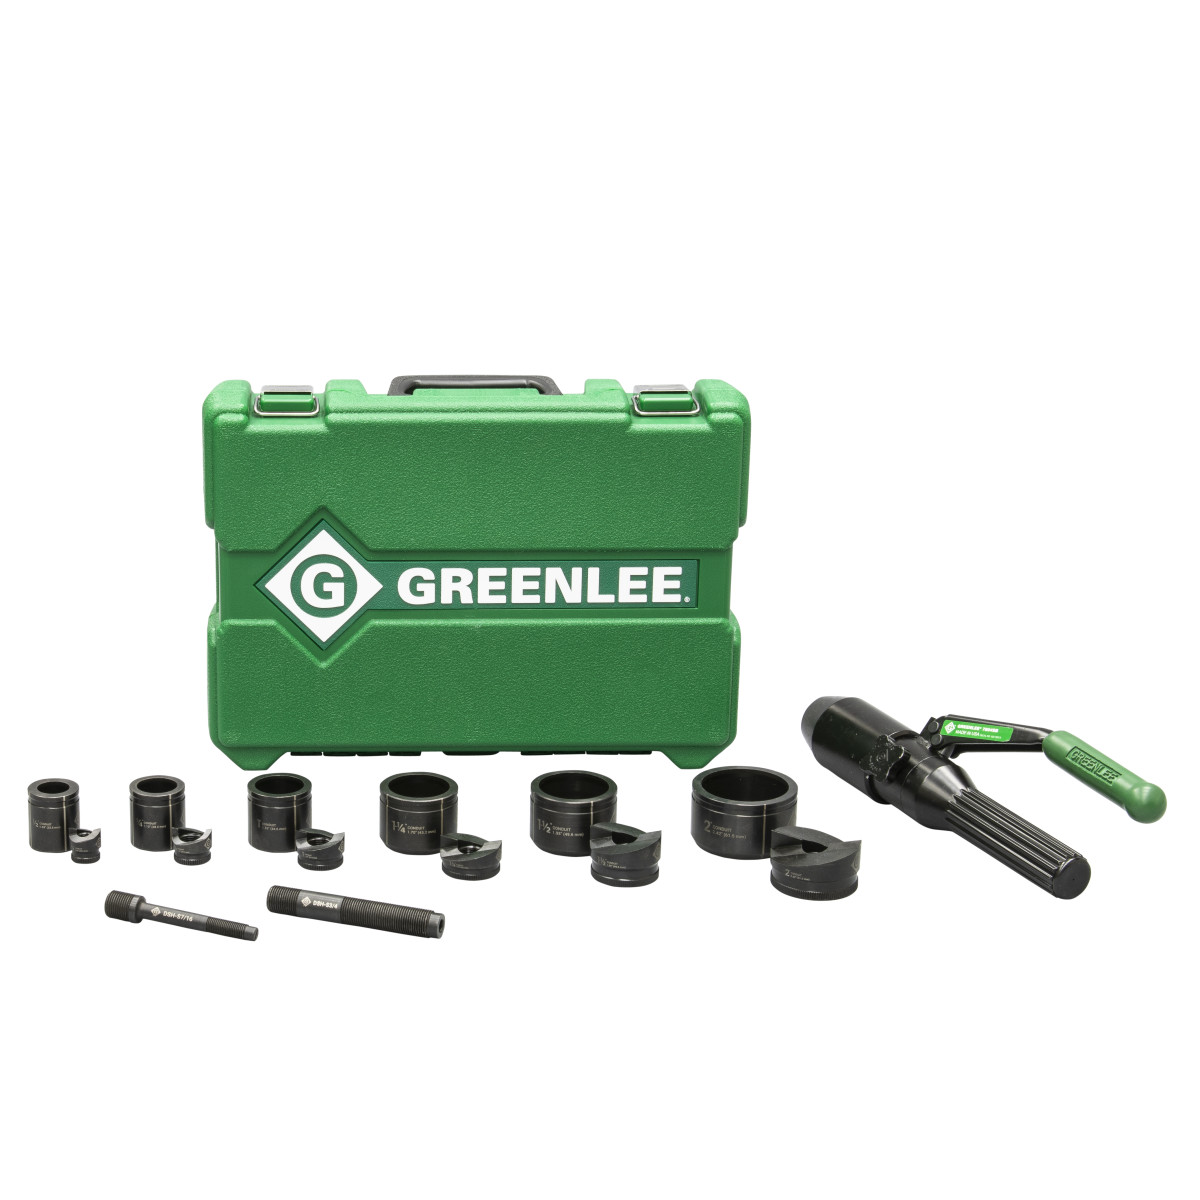 Greenlee 7806-SB Driver Quick Draw (7806-SB-M4)